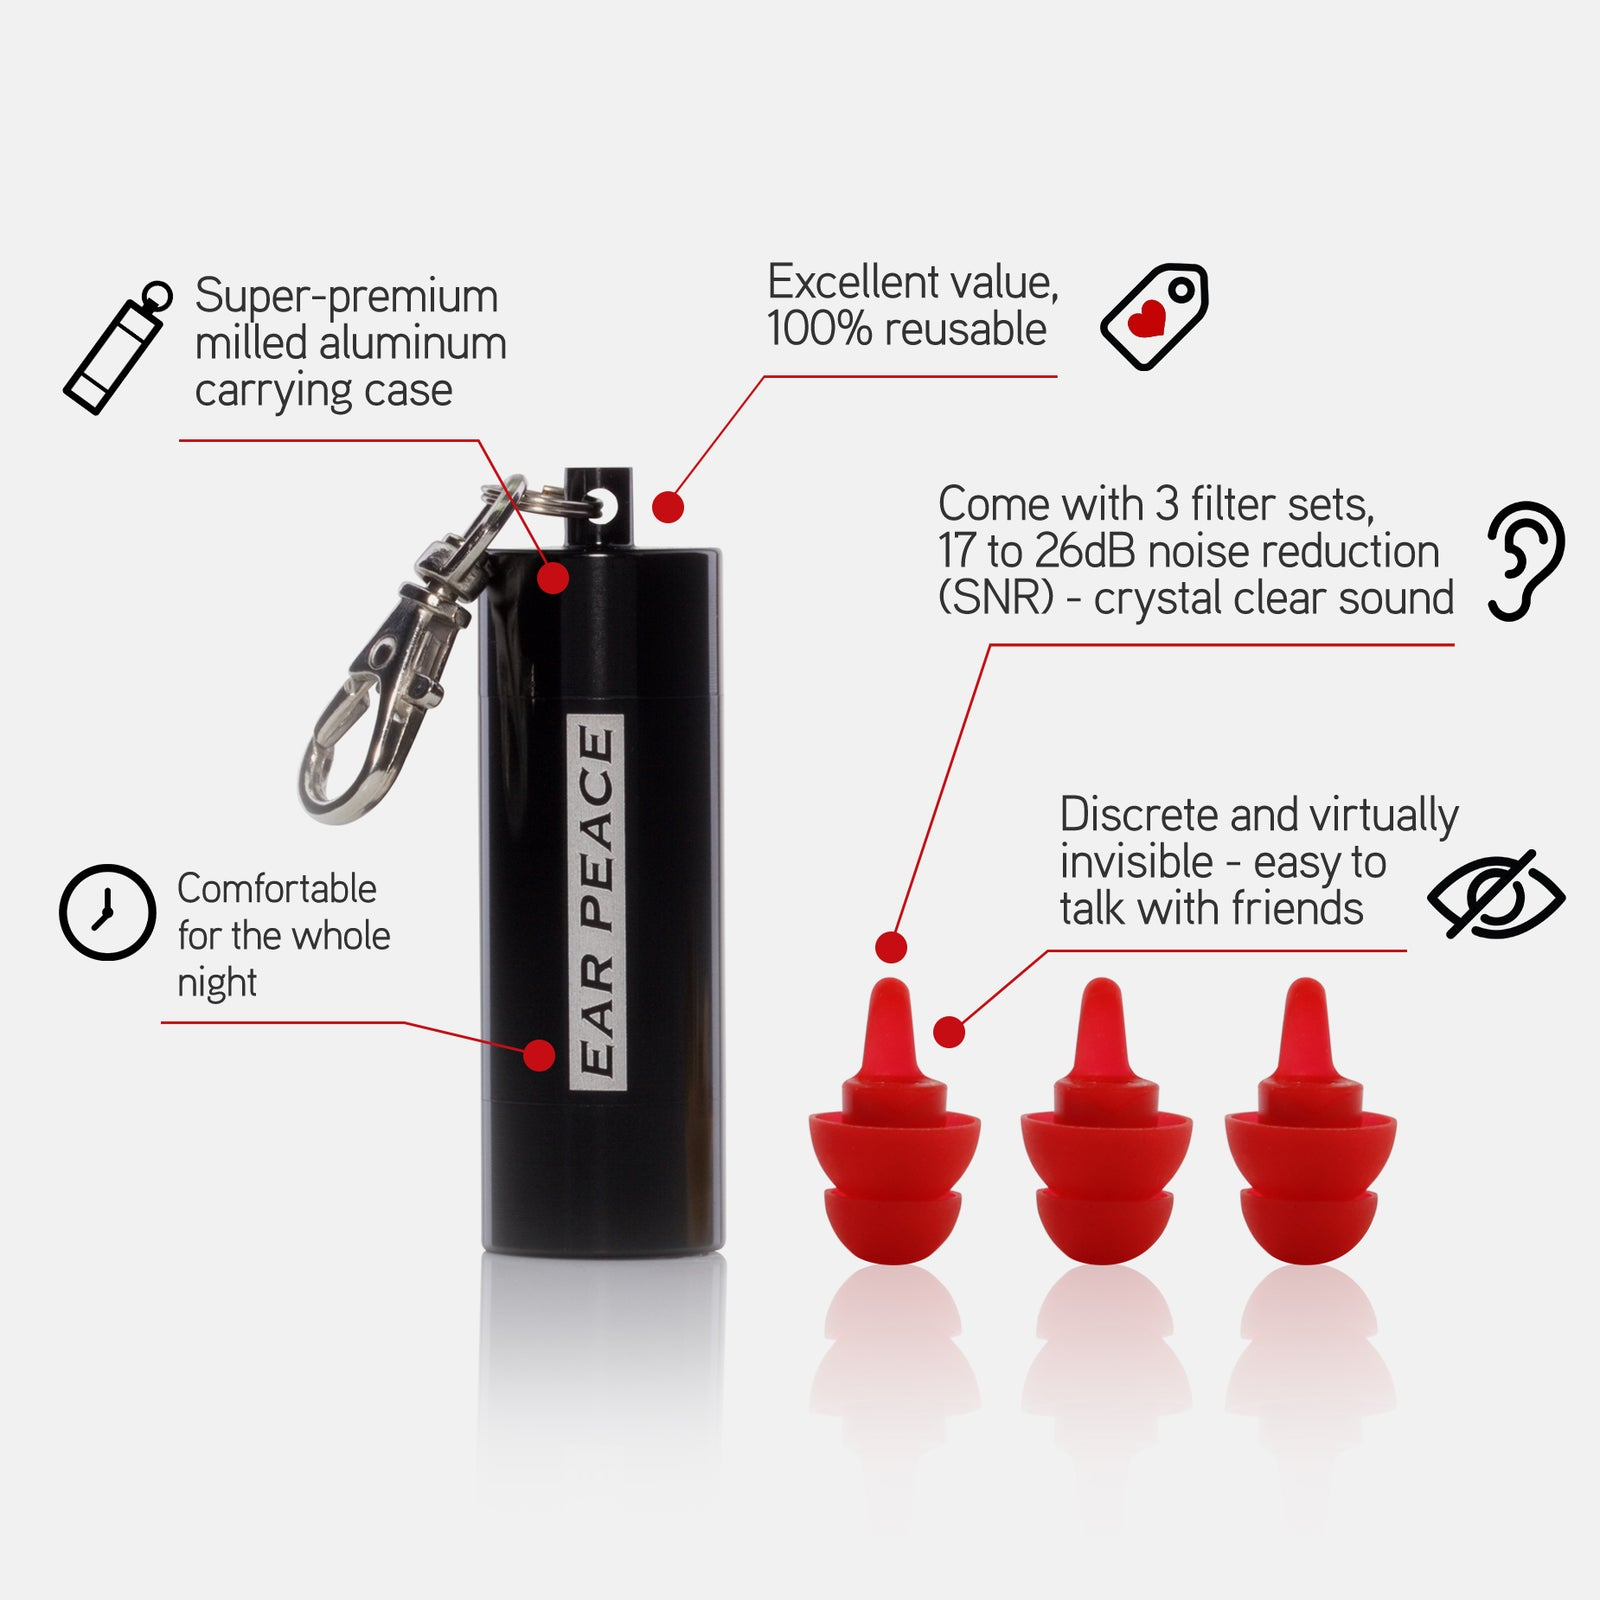 Ear Plugs Professional Grade Hi Fi Hearing Protection By Earpeace Ears And Speakers Protector Hear More Lose Less